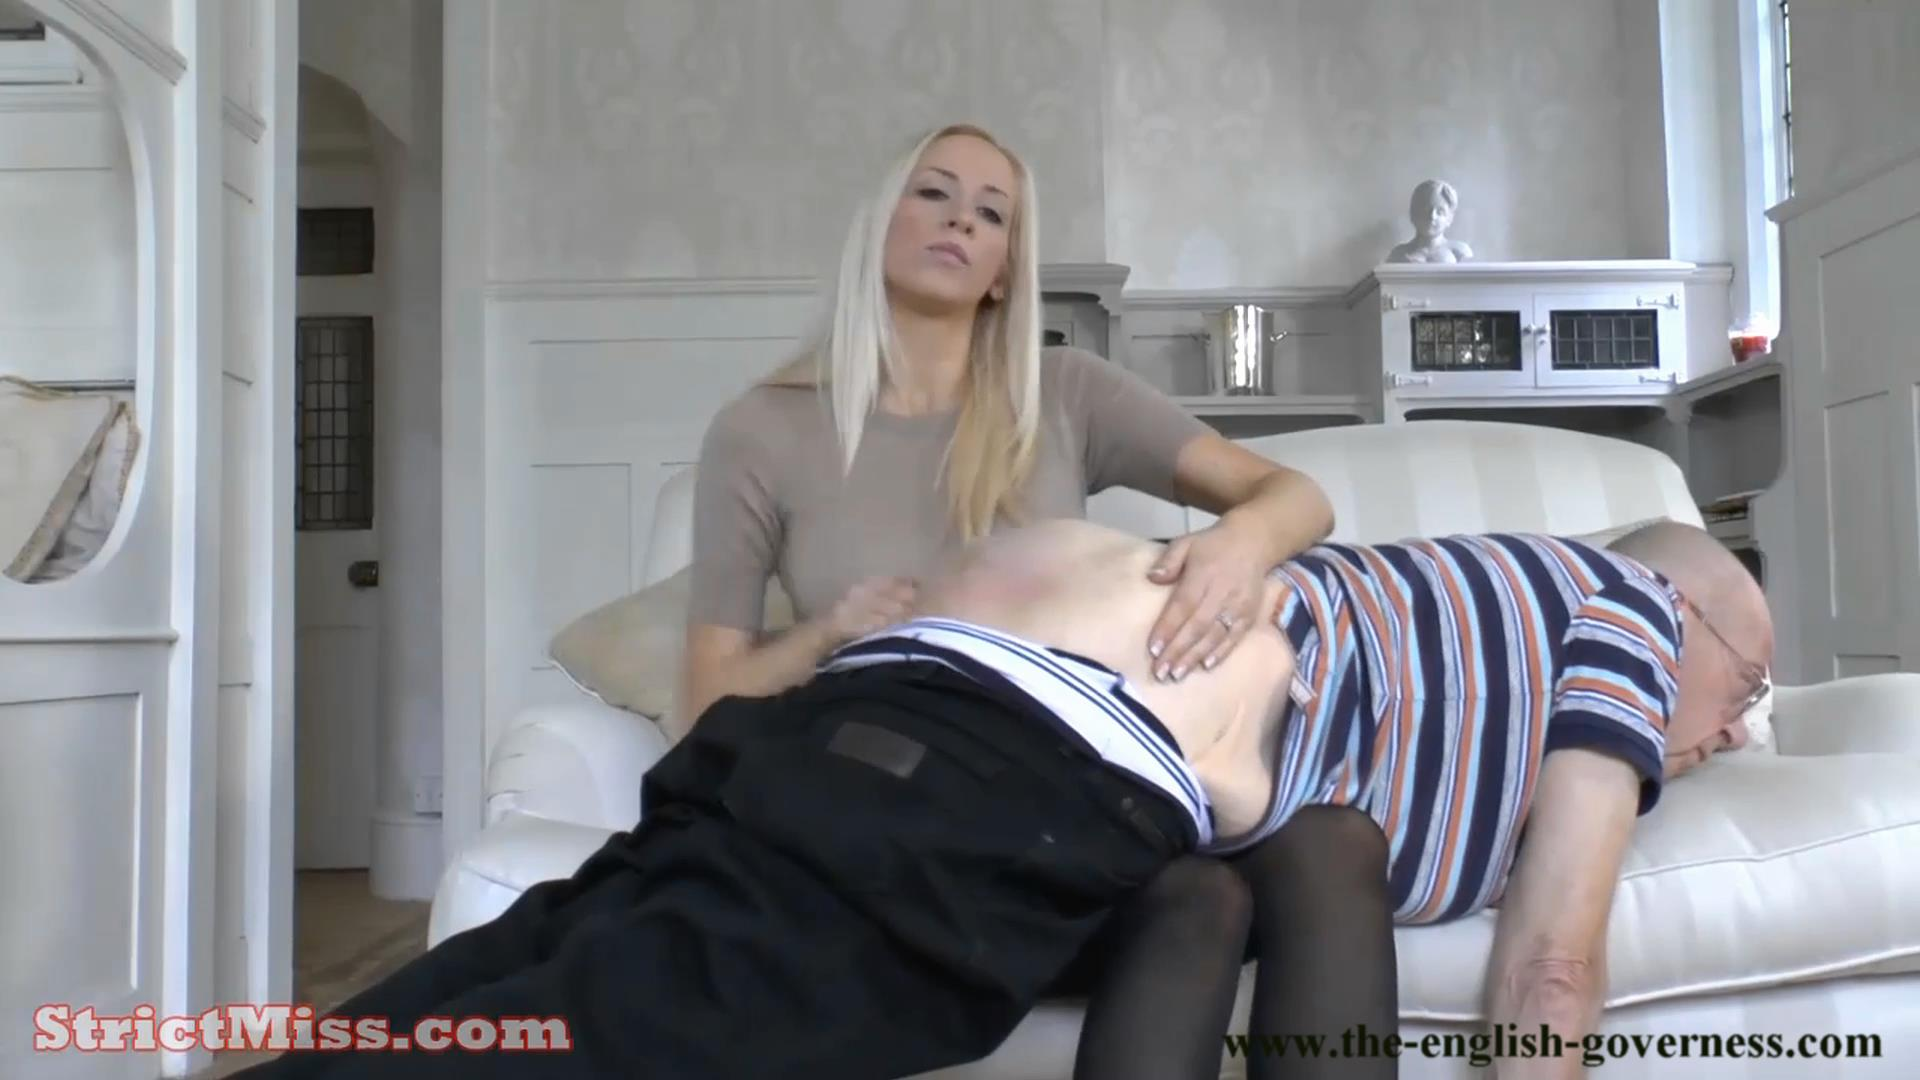 Miss Kenworthy an old fashioned hairbrushing - THE-ENGLISH-GOVERNESS - FULL HD/1080p/MP4